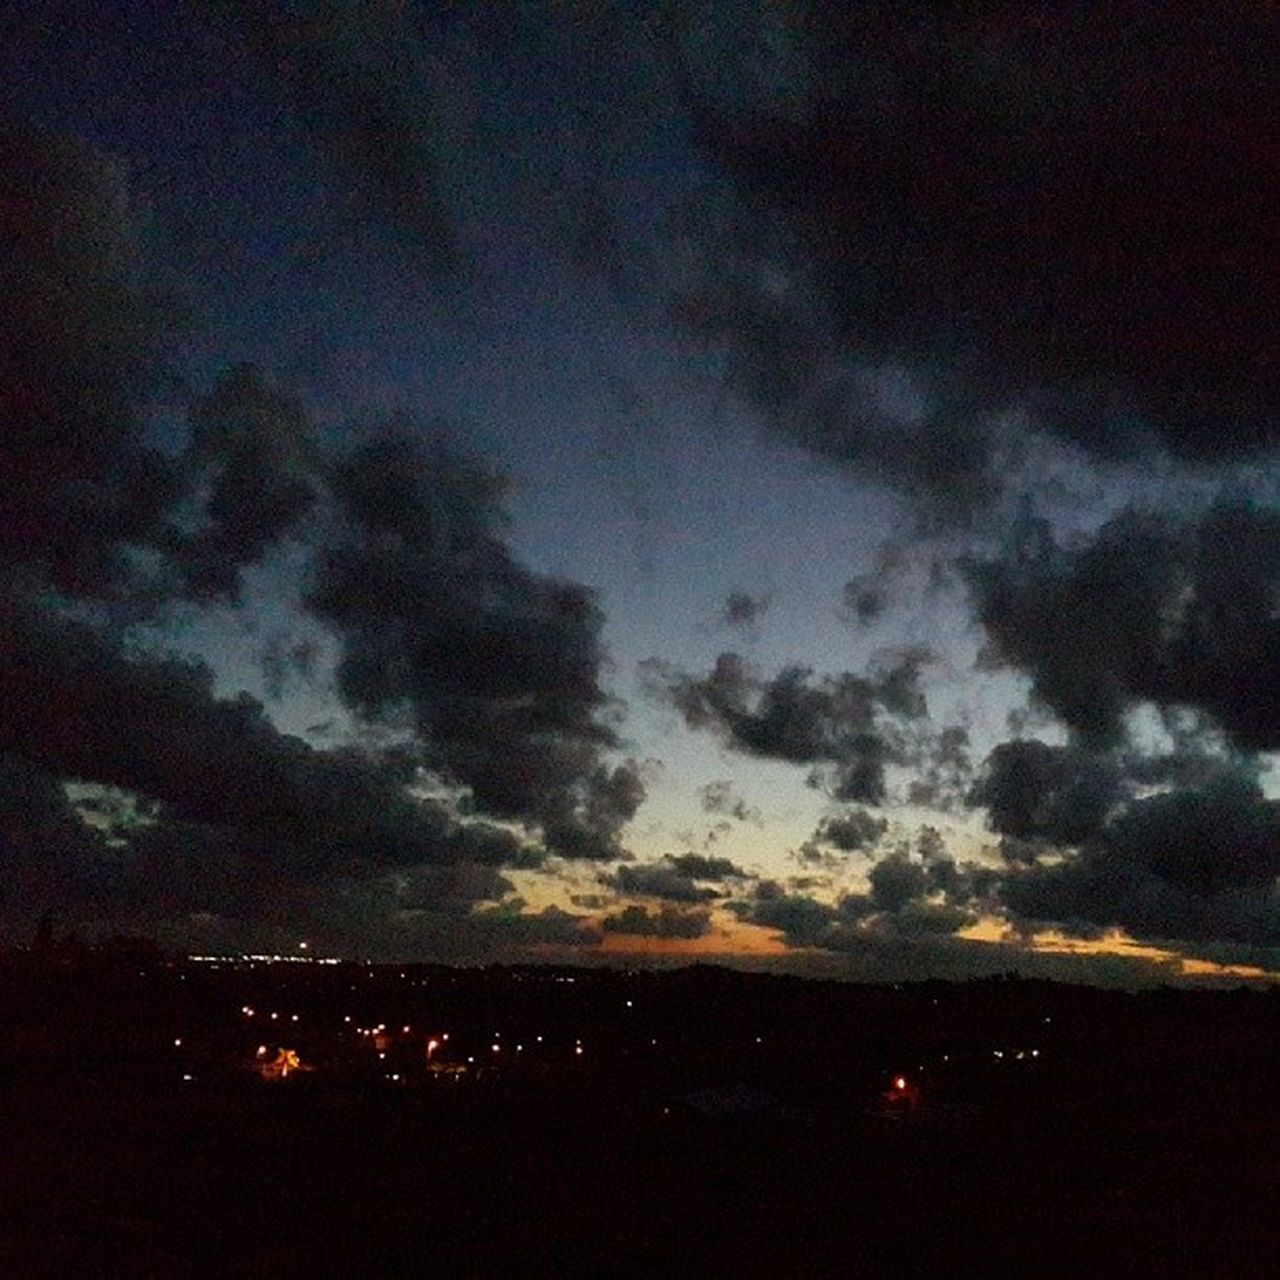 sky, beauty in nature, nature, no people, dramatic sky, silhouette, cloud - sky, scenics, sunset, night, environment, tranquility, outdoors